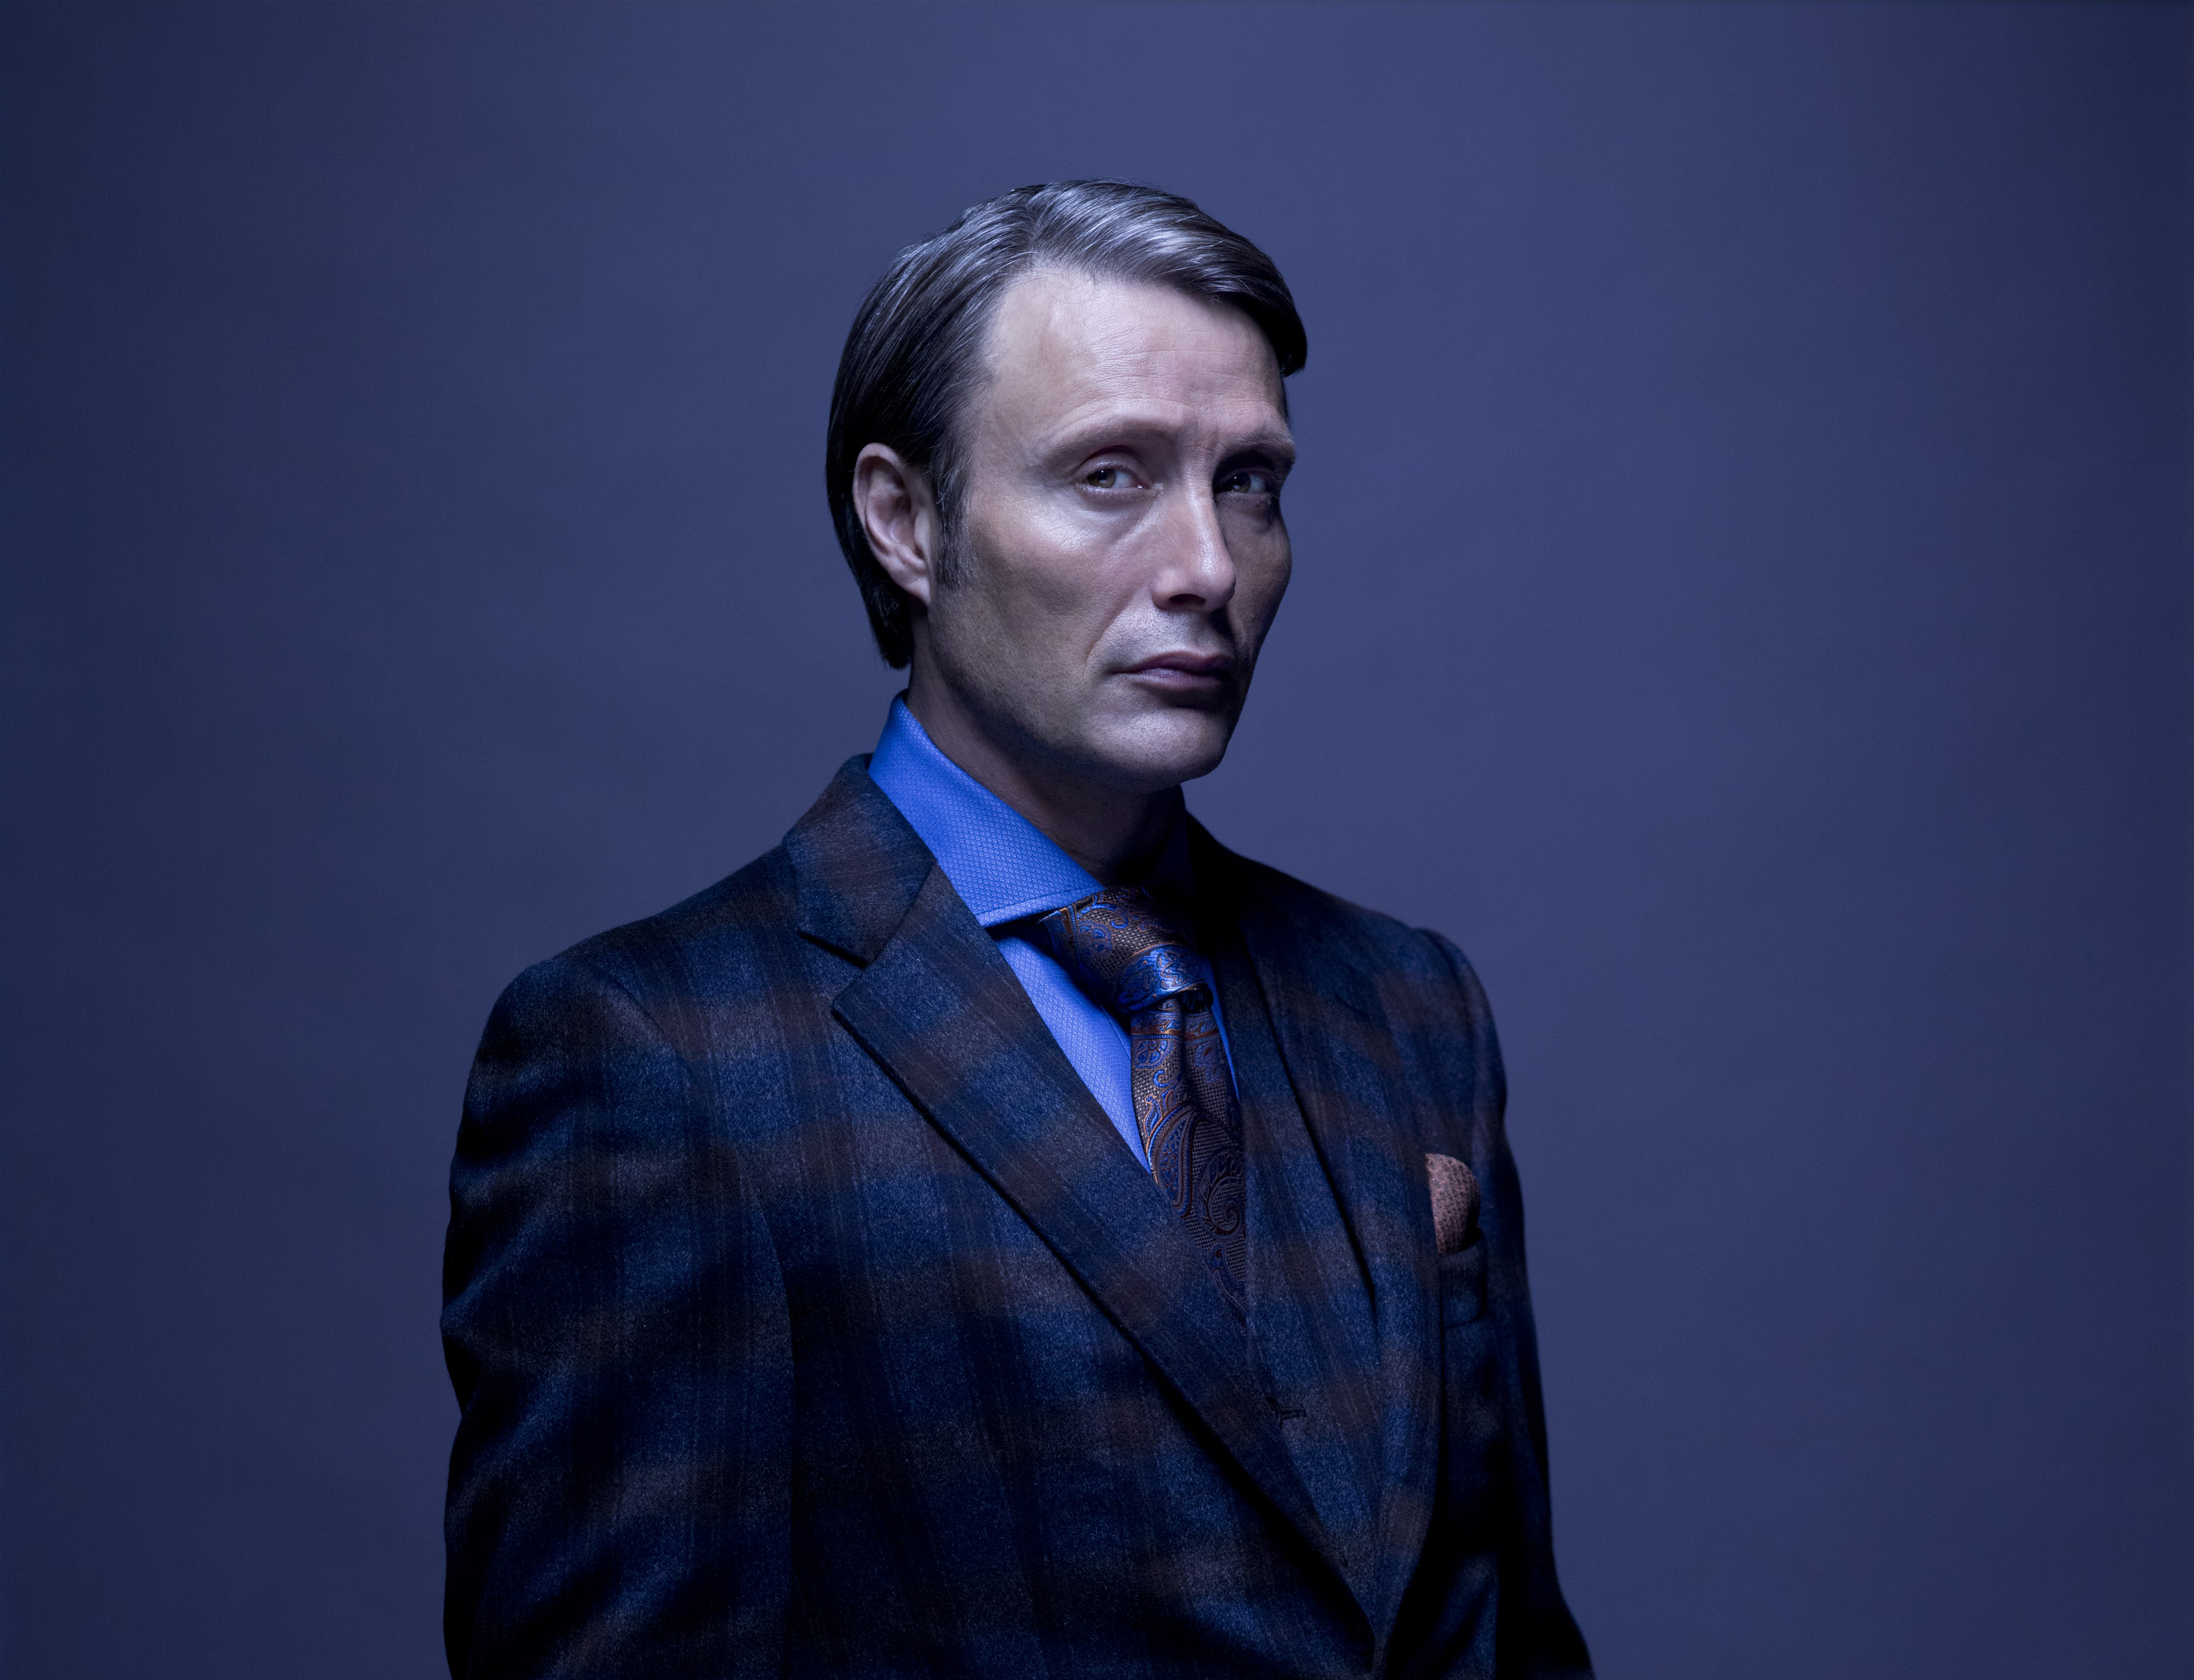 Hannibal TV Series Mads Mikkelsen as Dr. Hannibal Lecter